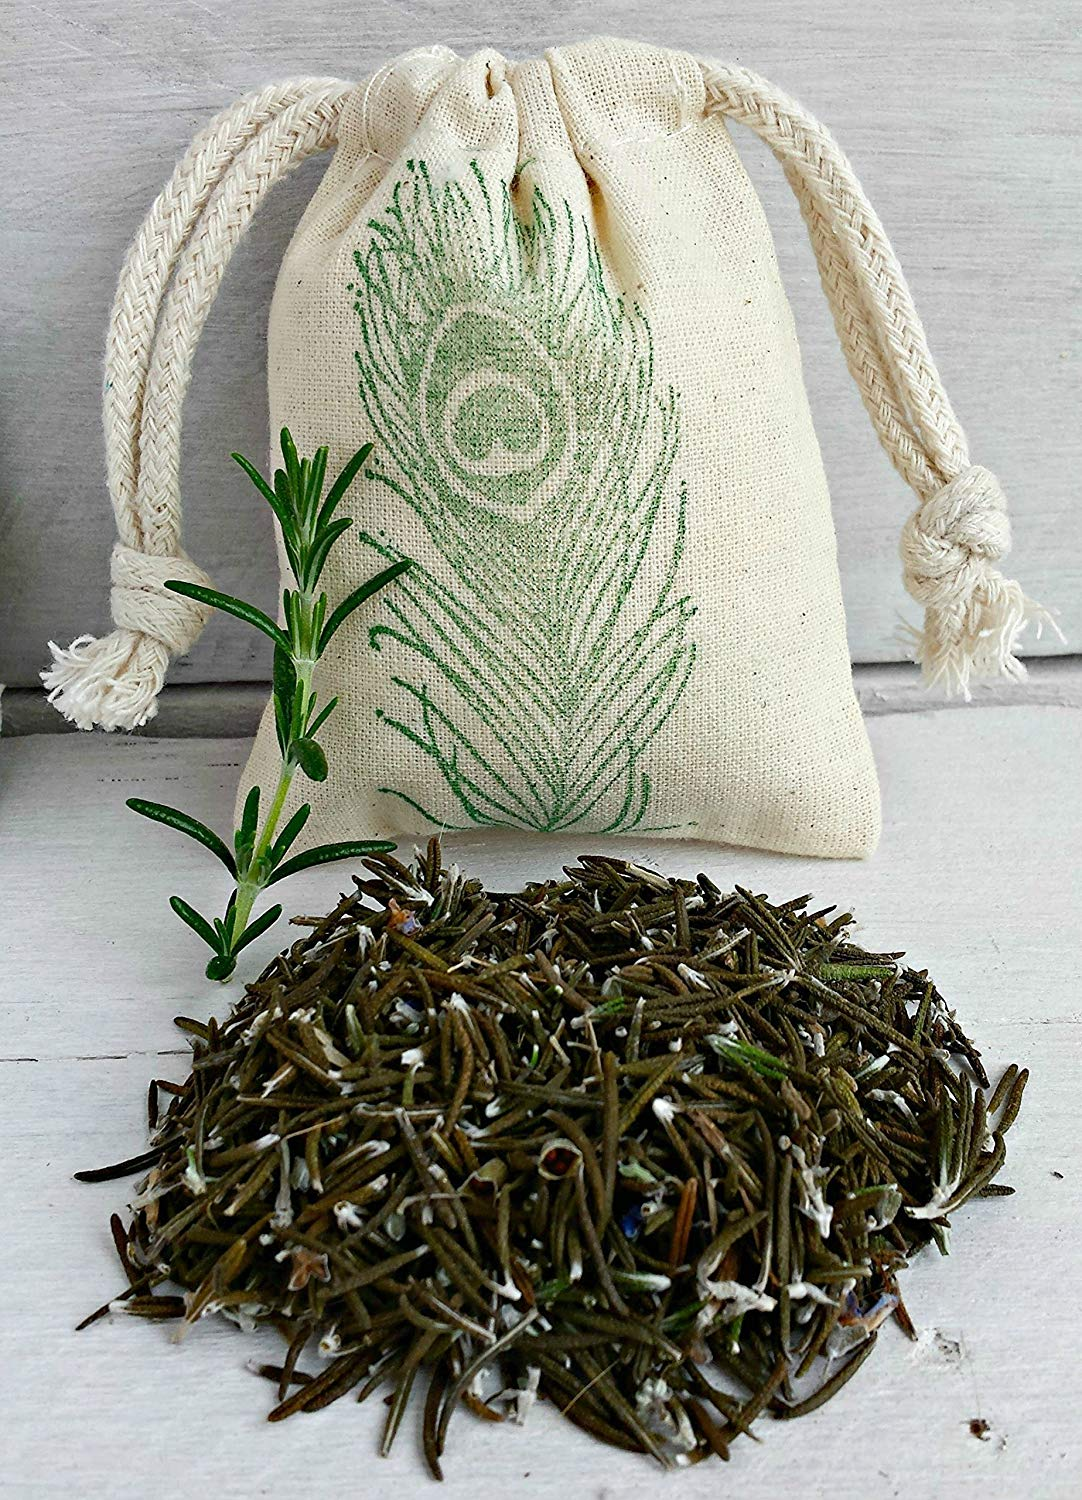 Rosemary Sachet Bags | Scented Sachets | Sachet Favors | Aromatherapy Wedding Favors | Scented Drawer Sachets | Dried Organic Rosemary